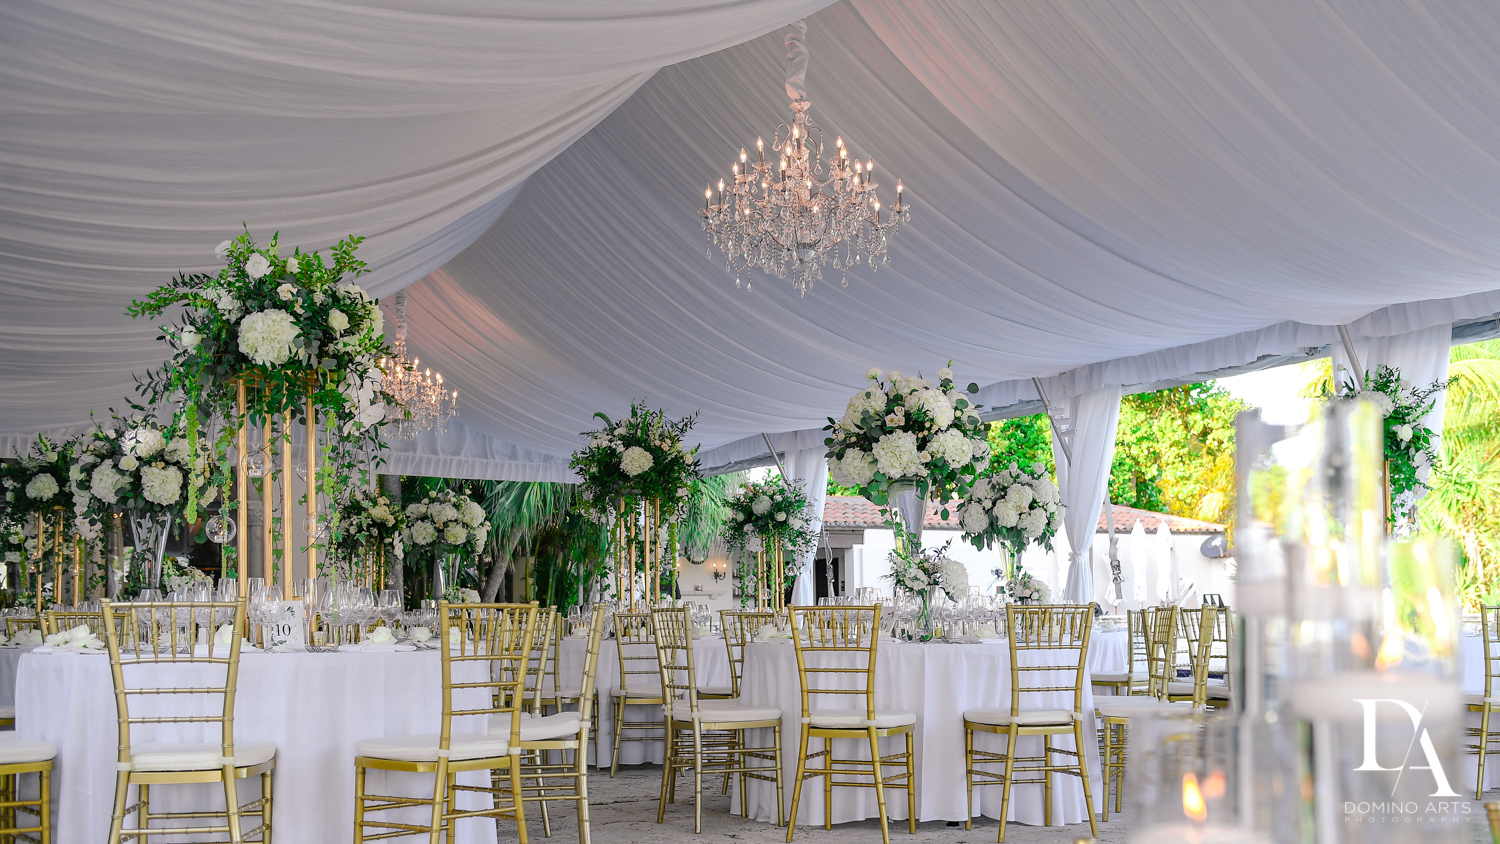 luxury tent decor at Tropical Garden Wedding at Fisher Island Miami by Domino Arts Photography